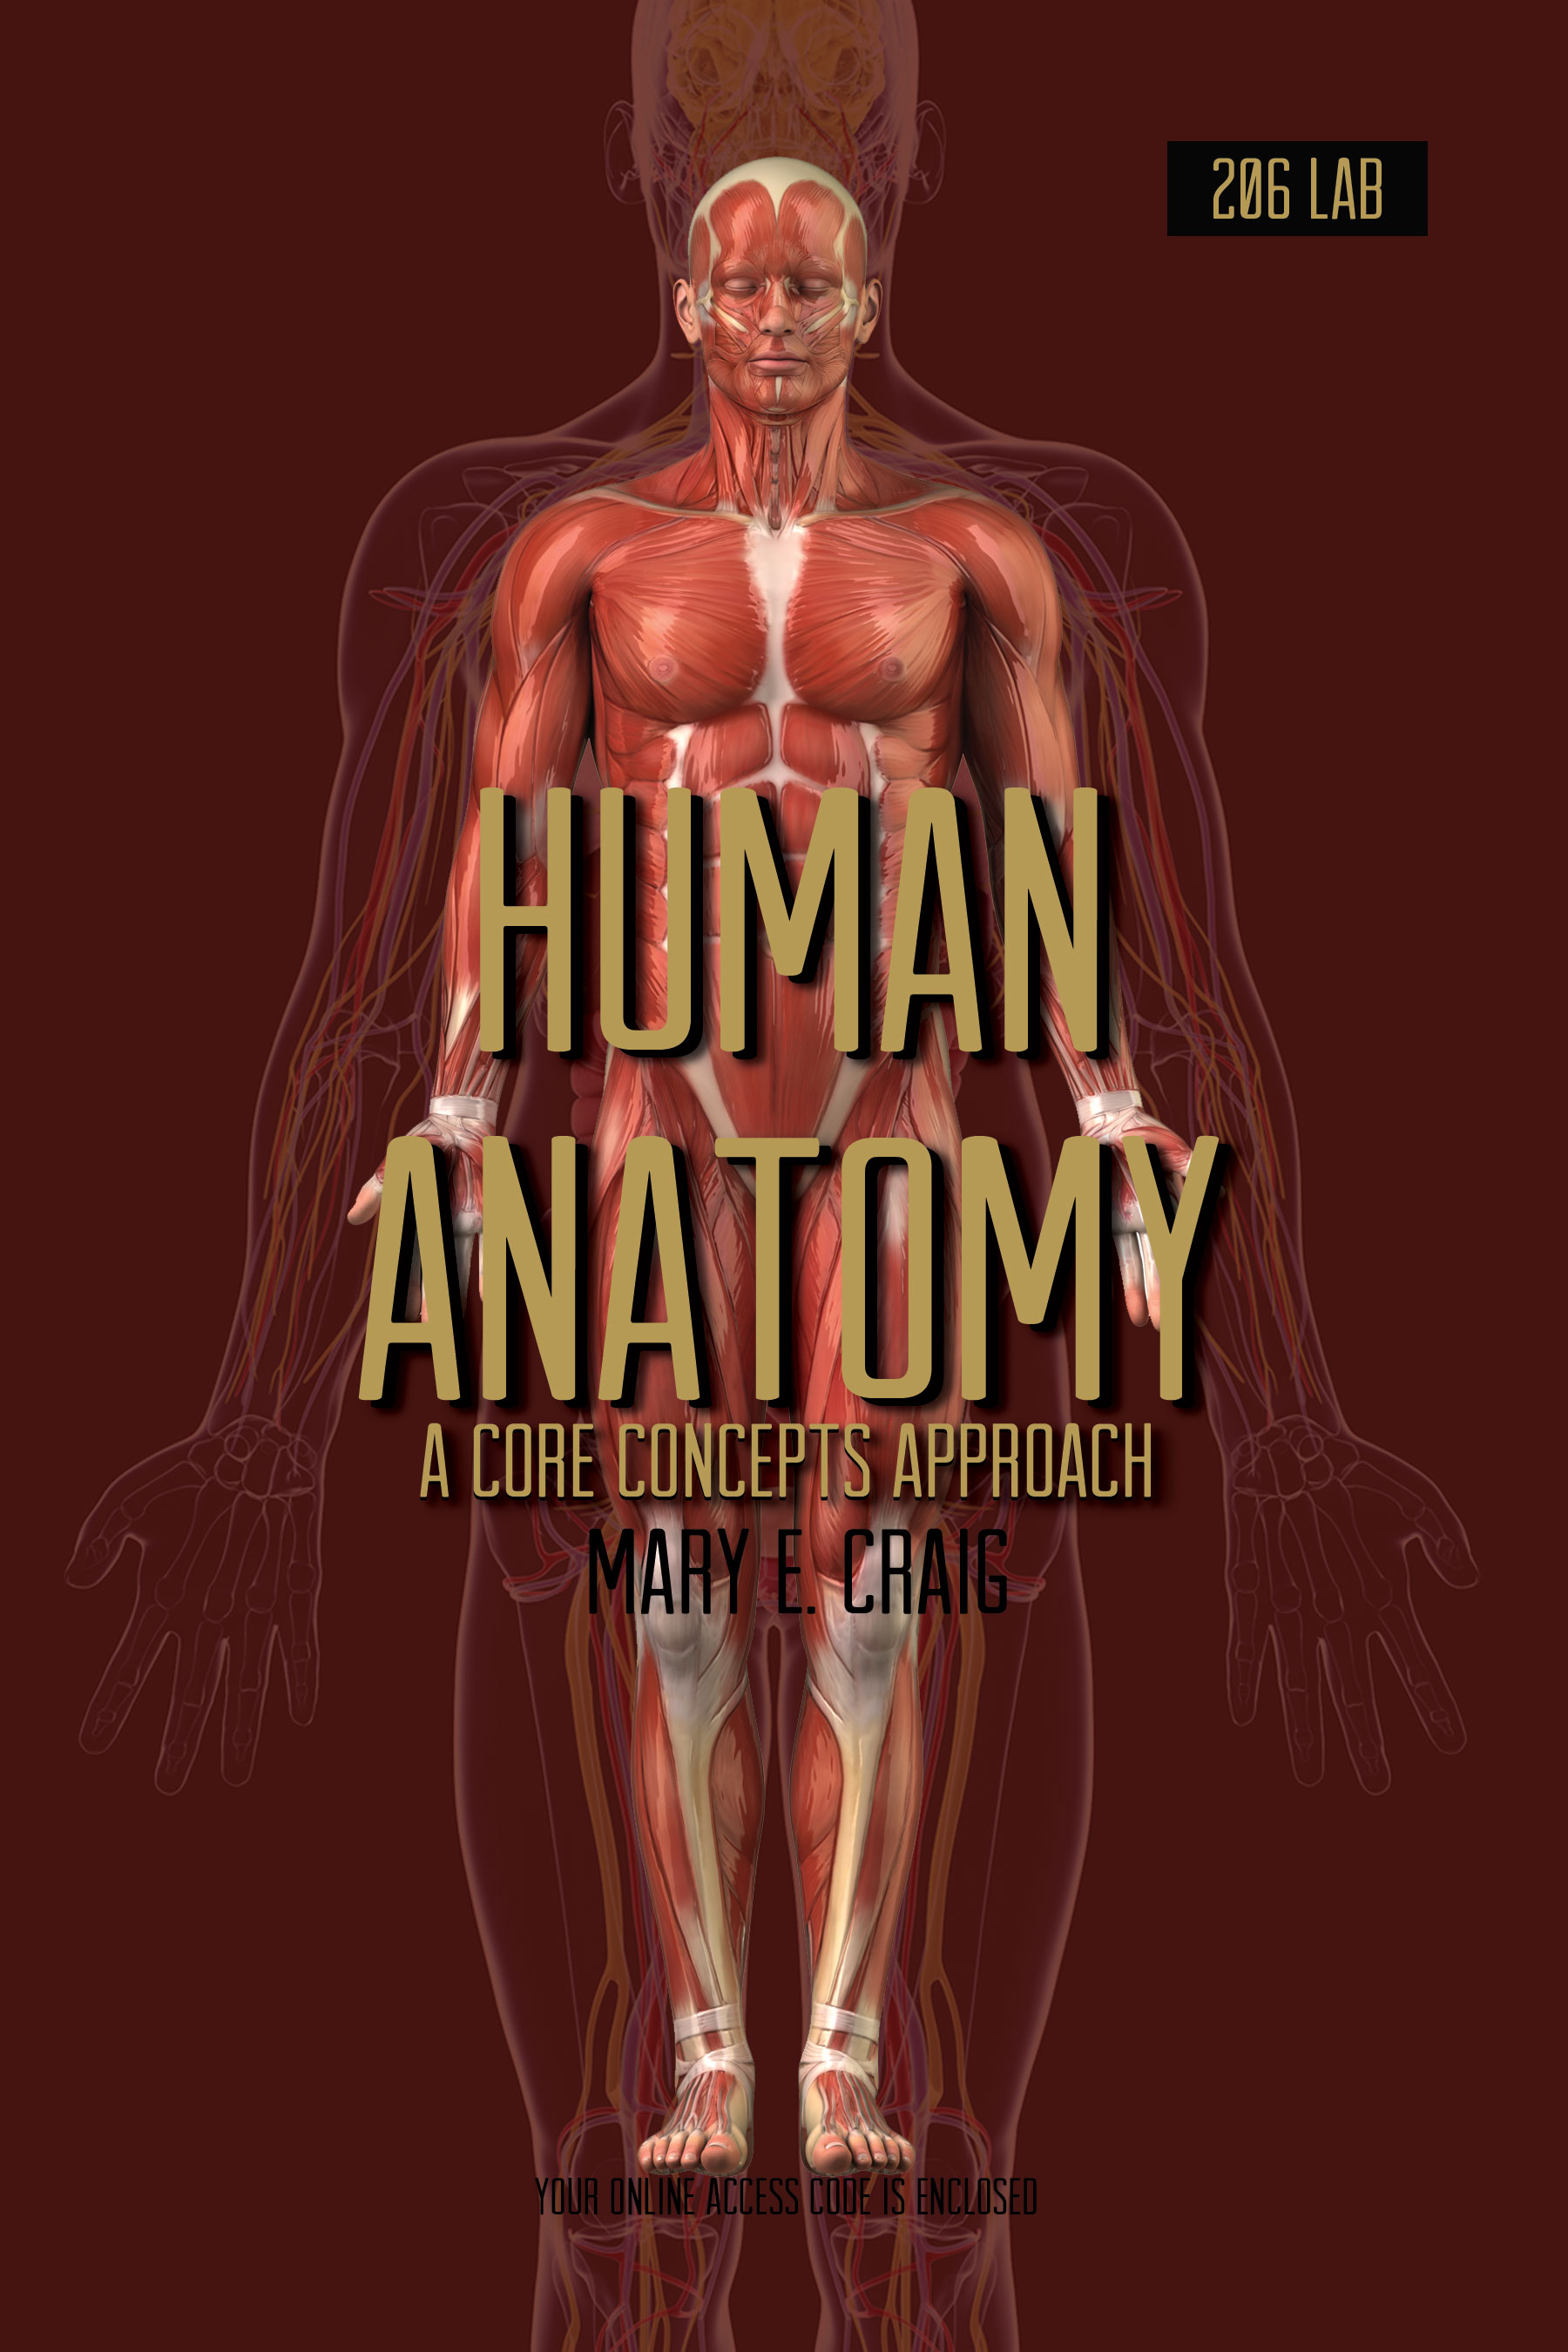 Product Details - Human Anatomy: A Core Concepts Approach - Lab 206 ...